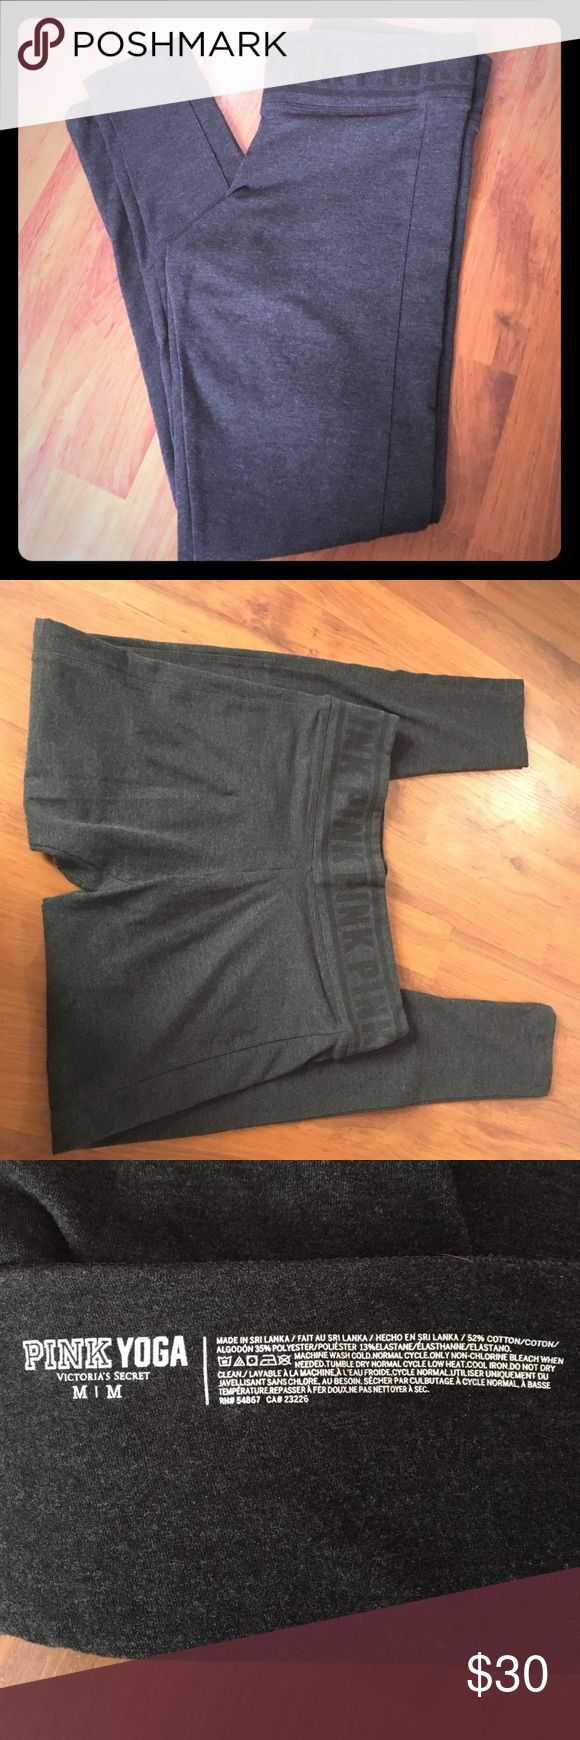 "Victoria's Secret Pink Yoga Leggings These leggings are a part of Victoria's Secret Pink Yoga line. They're a size medium, but they're a little tighter than I like (I usually wear an 8-10 pant), so I only wore/washed them once. The color is a dark/charcoal gray. There is a ""stripe"" down the outside of each leg, but it's the same material - I think it gives the pants an athletic look, but they can also be worn out with a nice shirt. There's also a convenient pocket on the waistband to hold…"